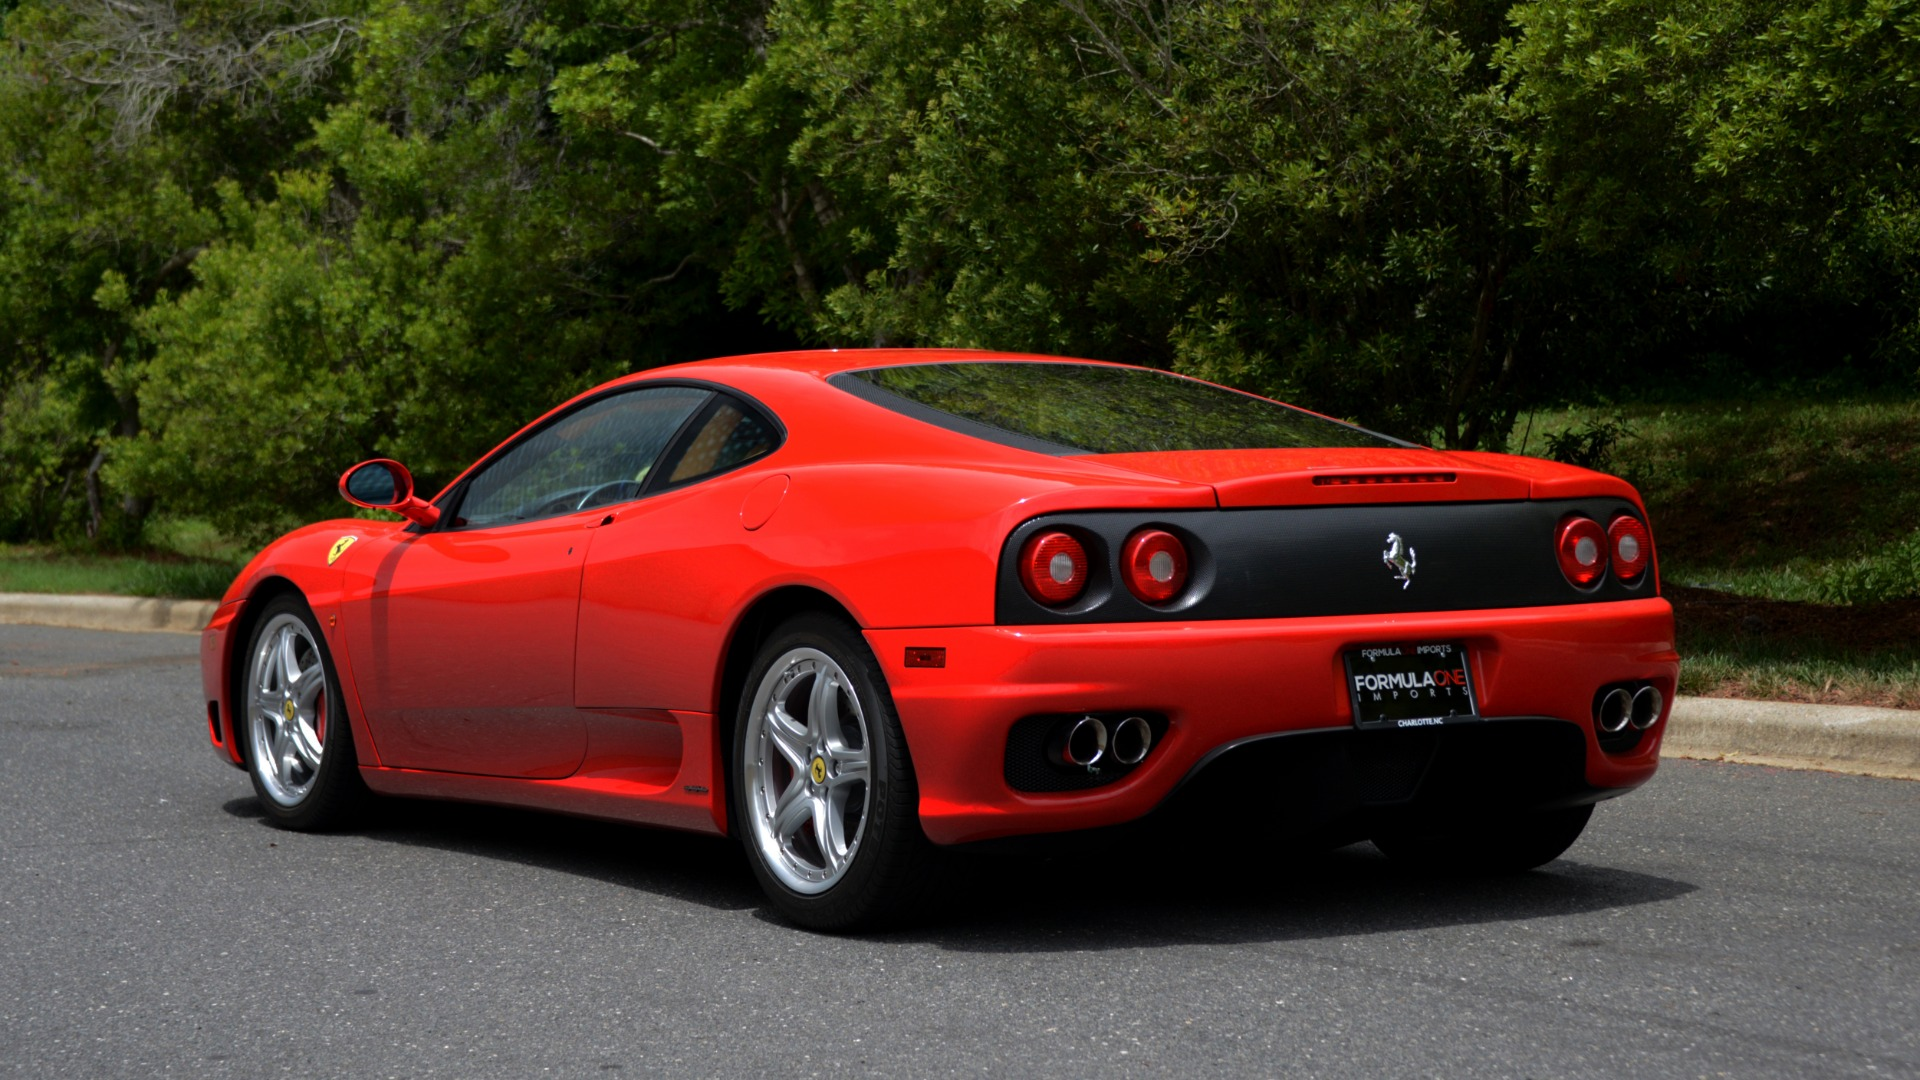 Used 2004 Ferrari 360 MODENA COUPE / GATED 6-SPD MANUAL / SUNROOF / LOW MILES for sale Sold at Formula Imports in Charlotte NC 28227 3